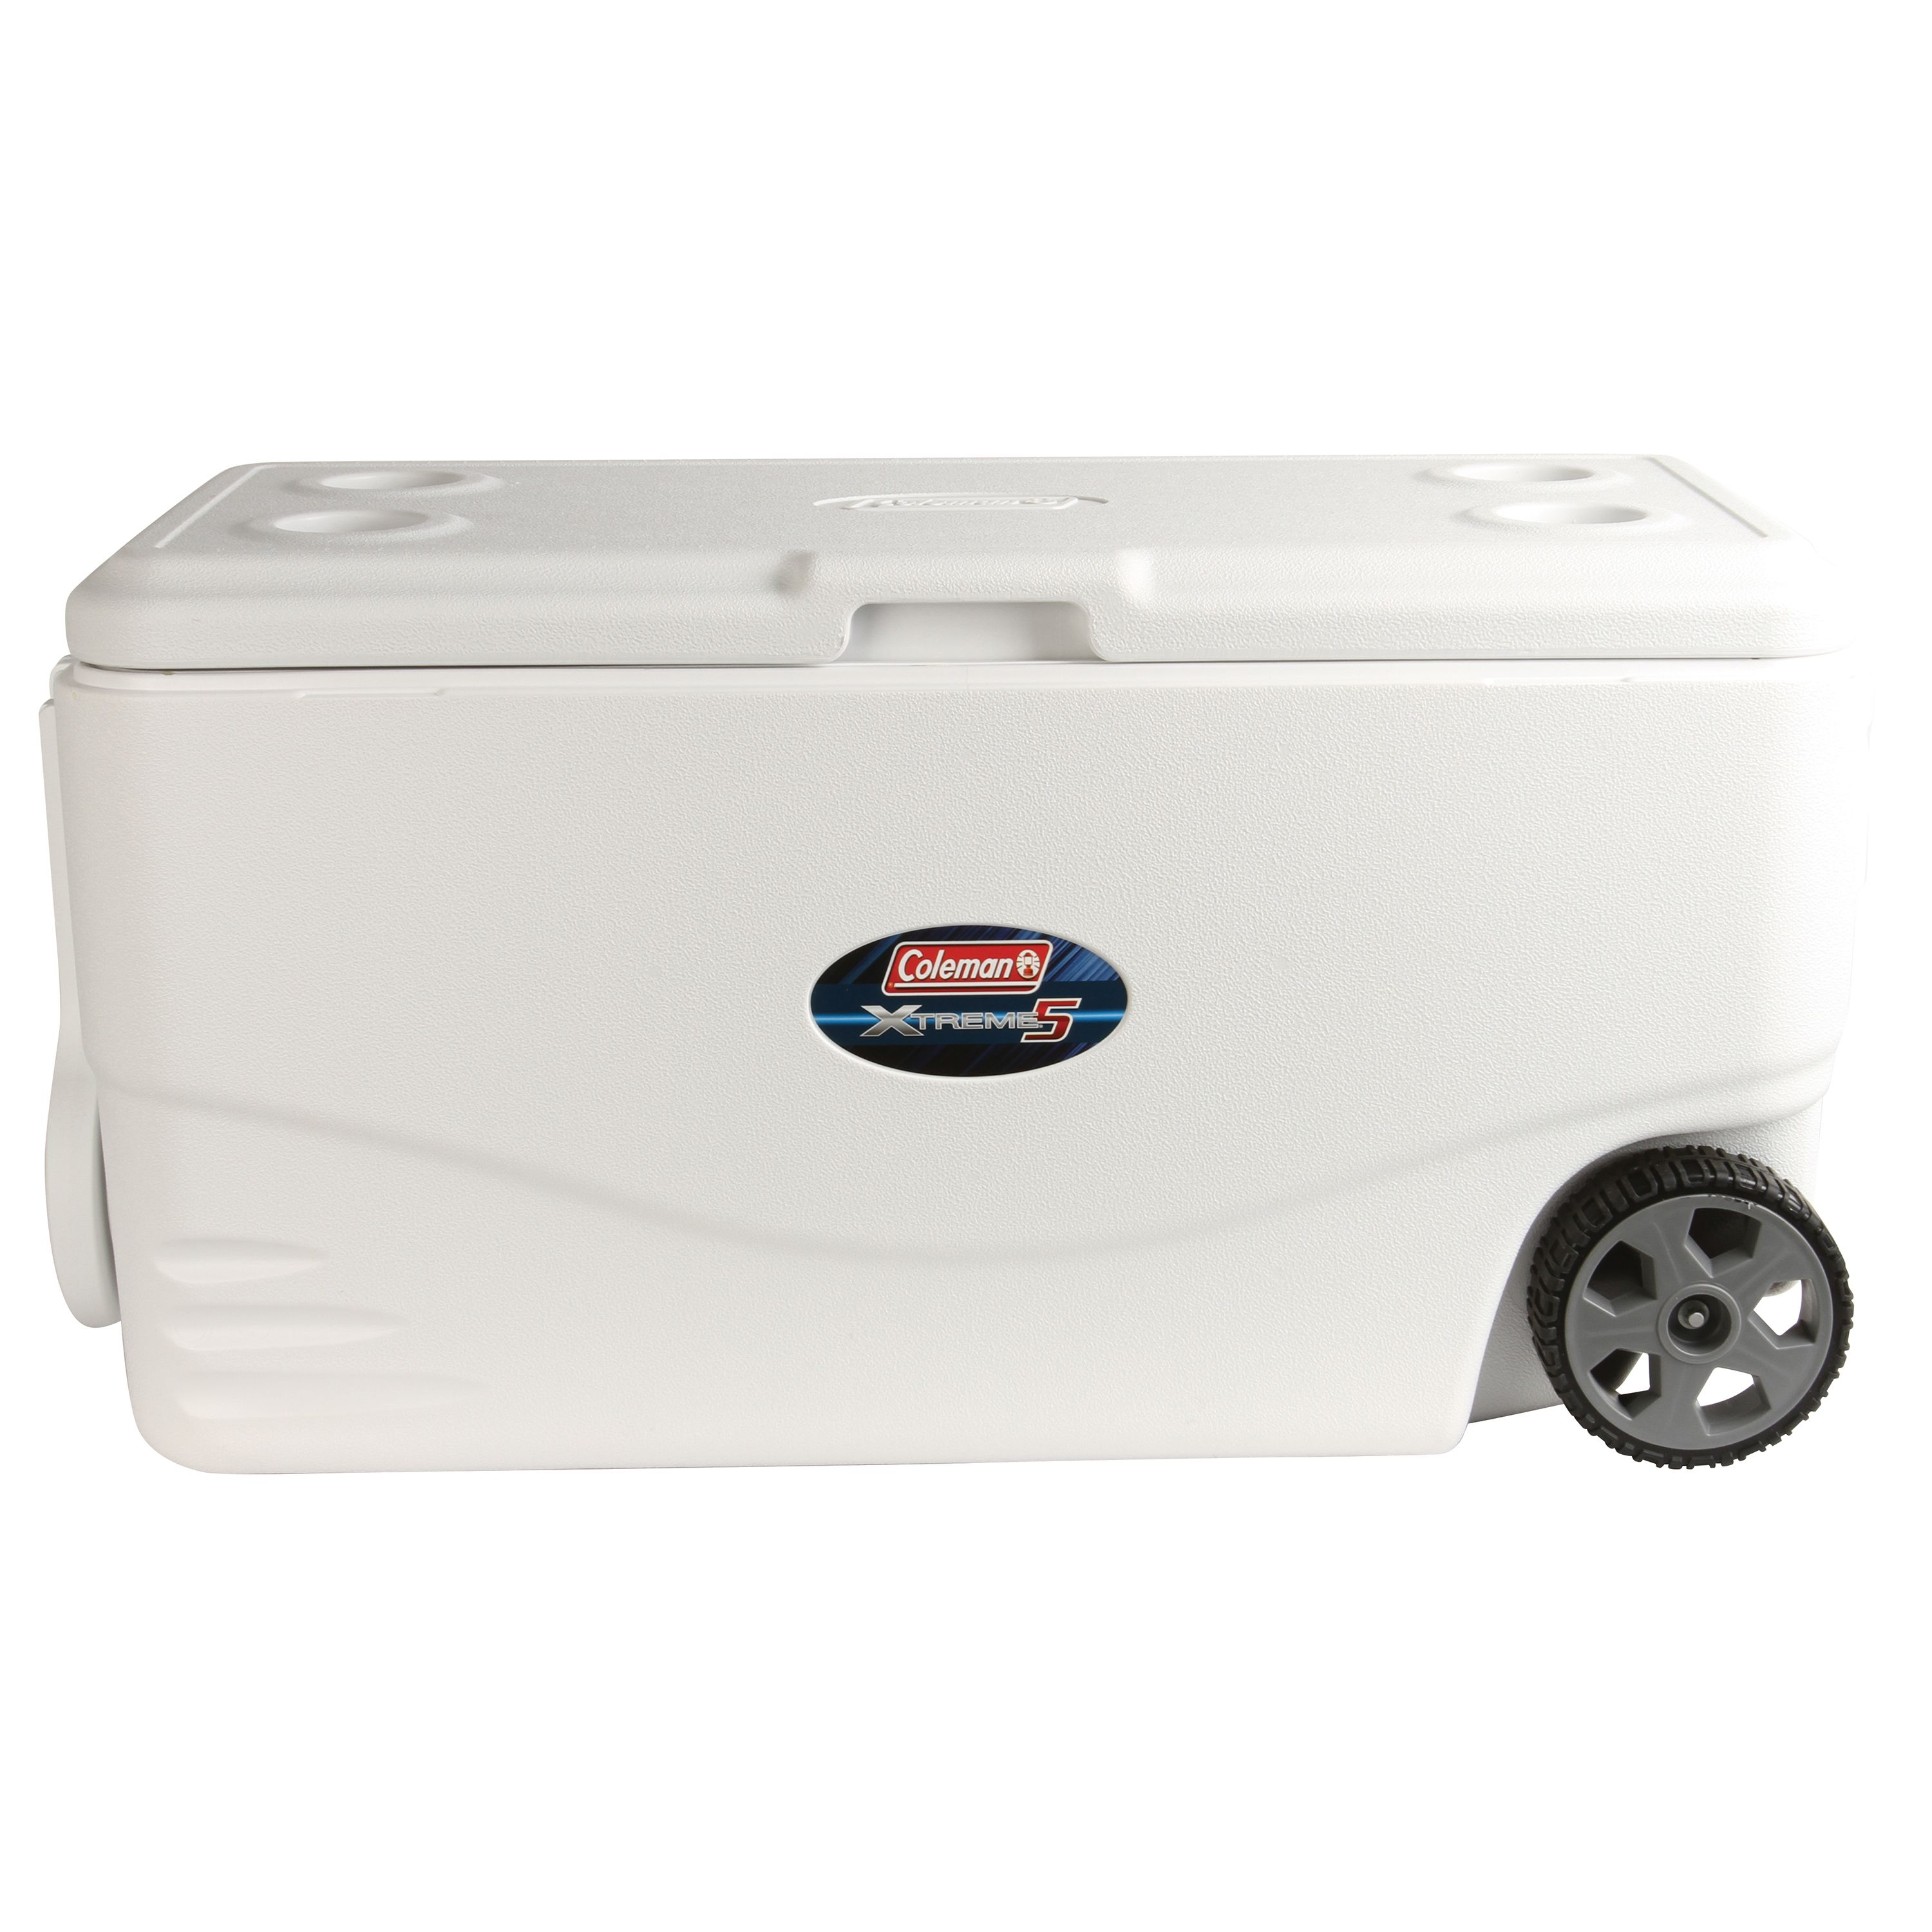 Coleman 100Quart Xtreme 5Day HeavyDuty Cooler with